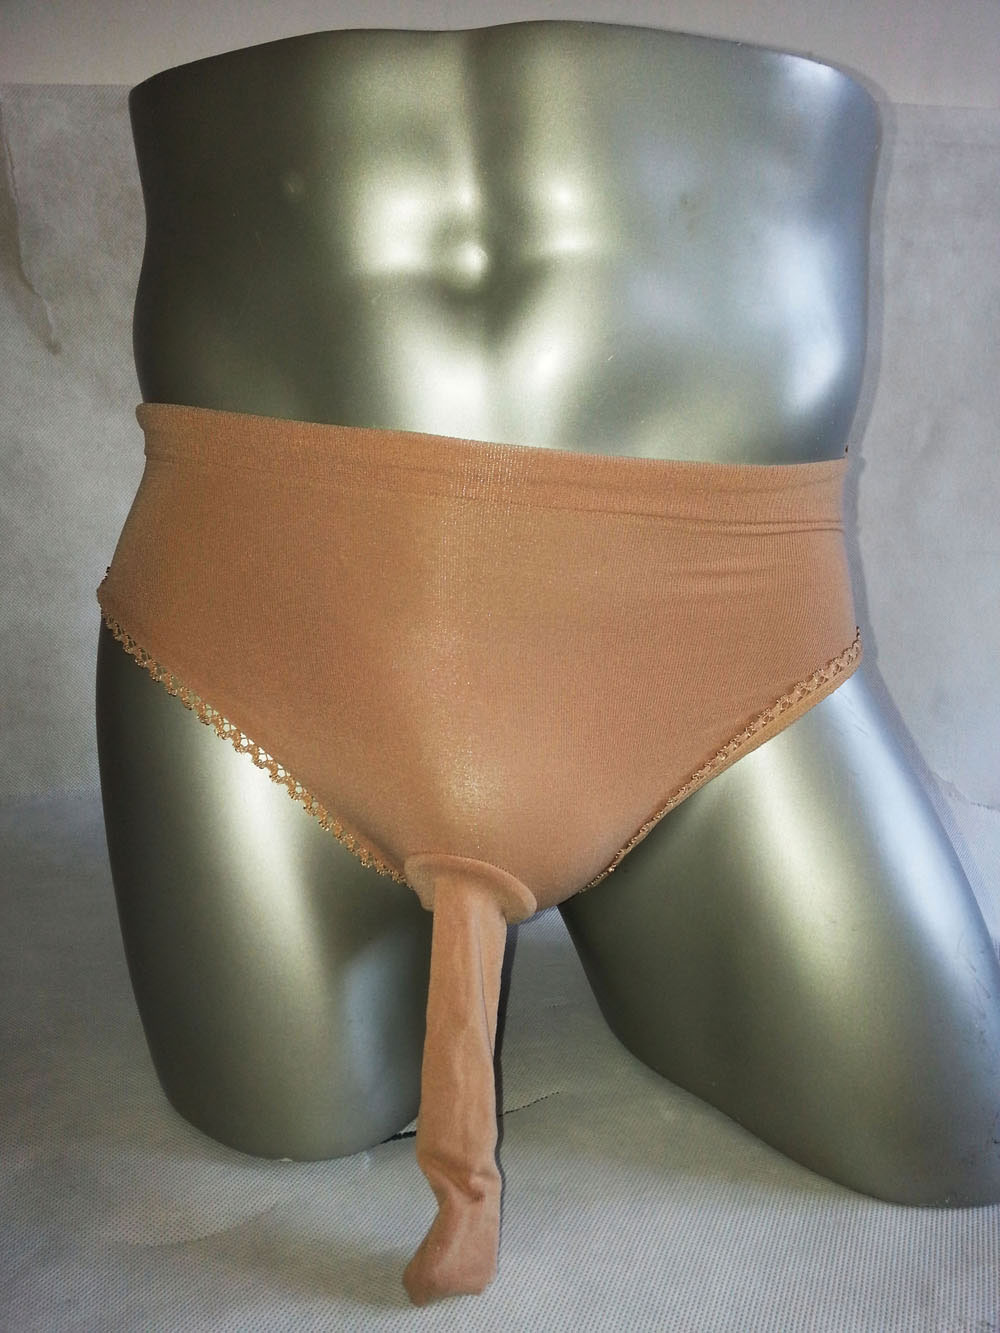 Pantyhose panties men